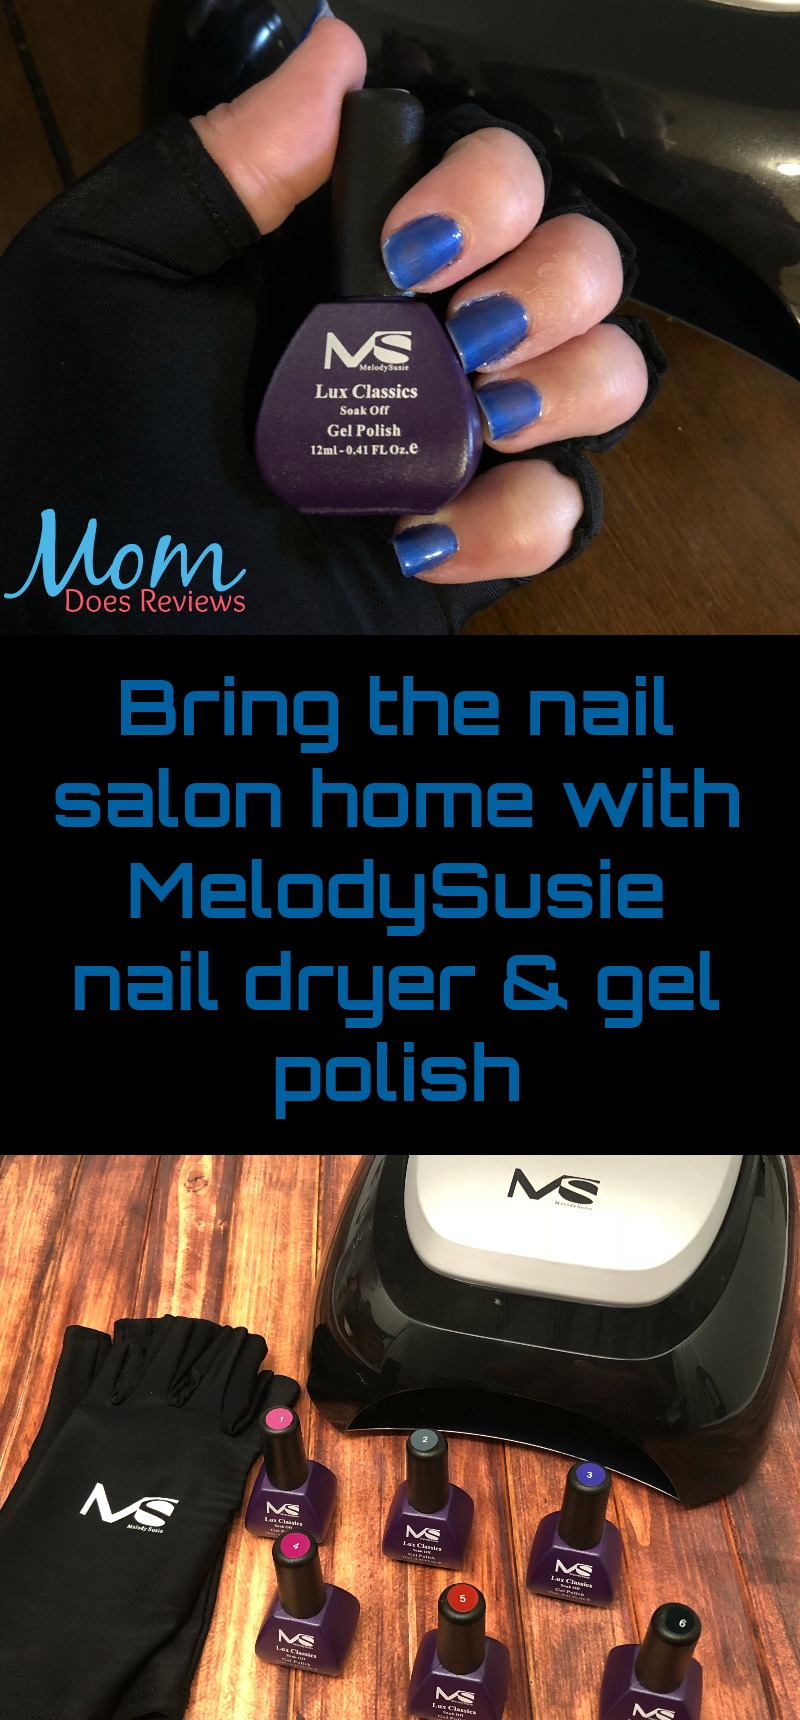 MelodySusie Gel Nail Polish Products Brings the Nail Salon Home ...